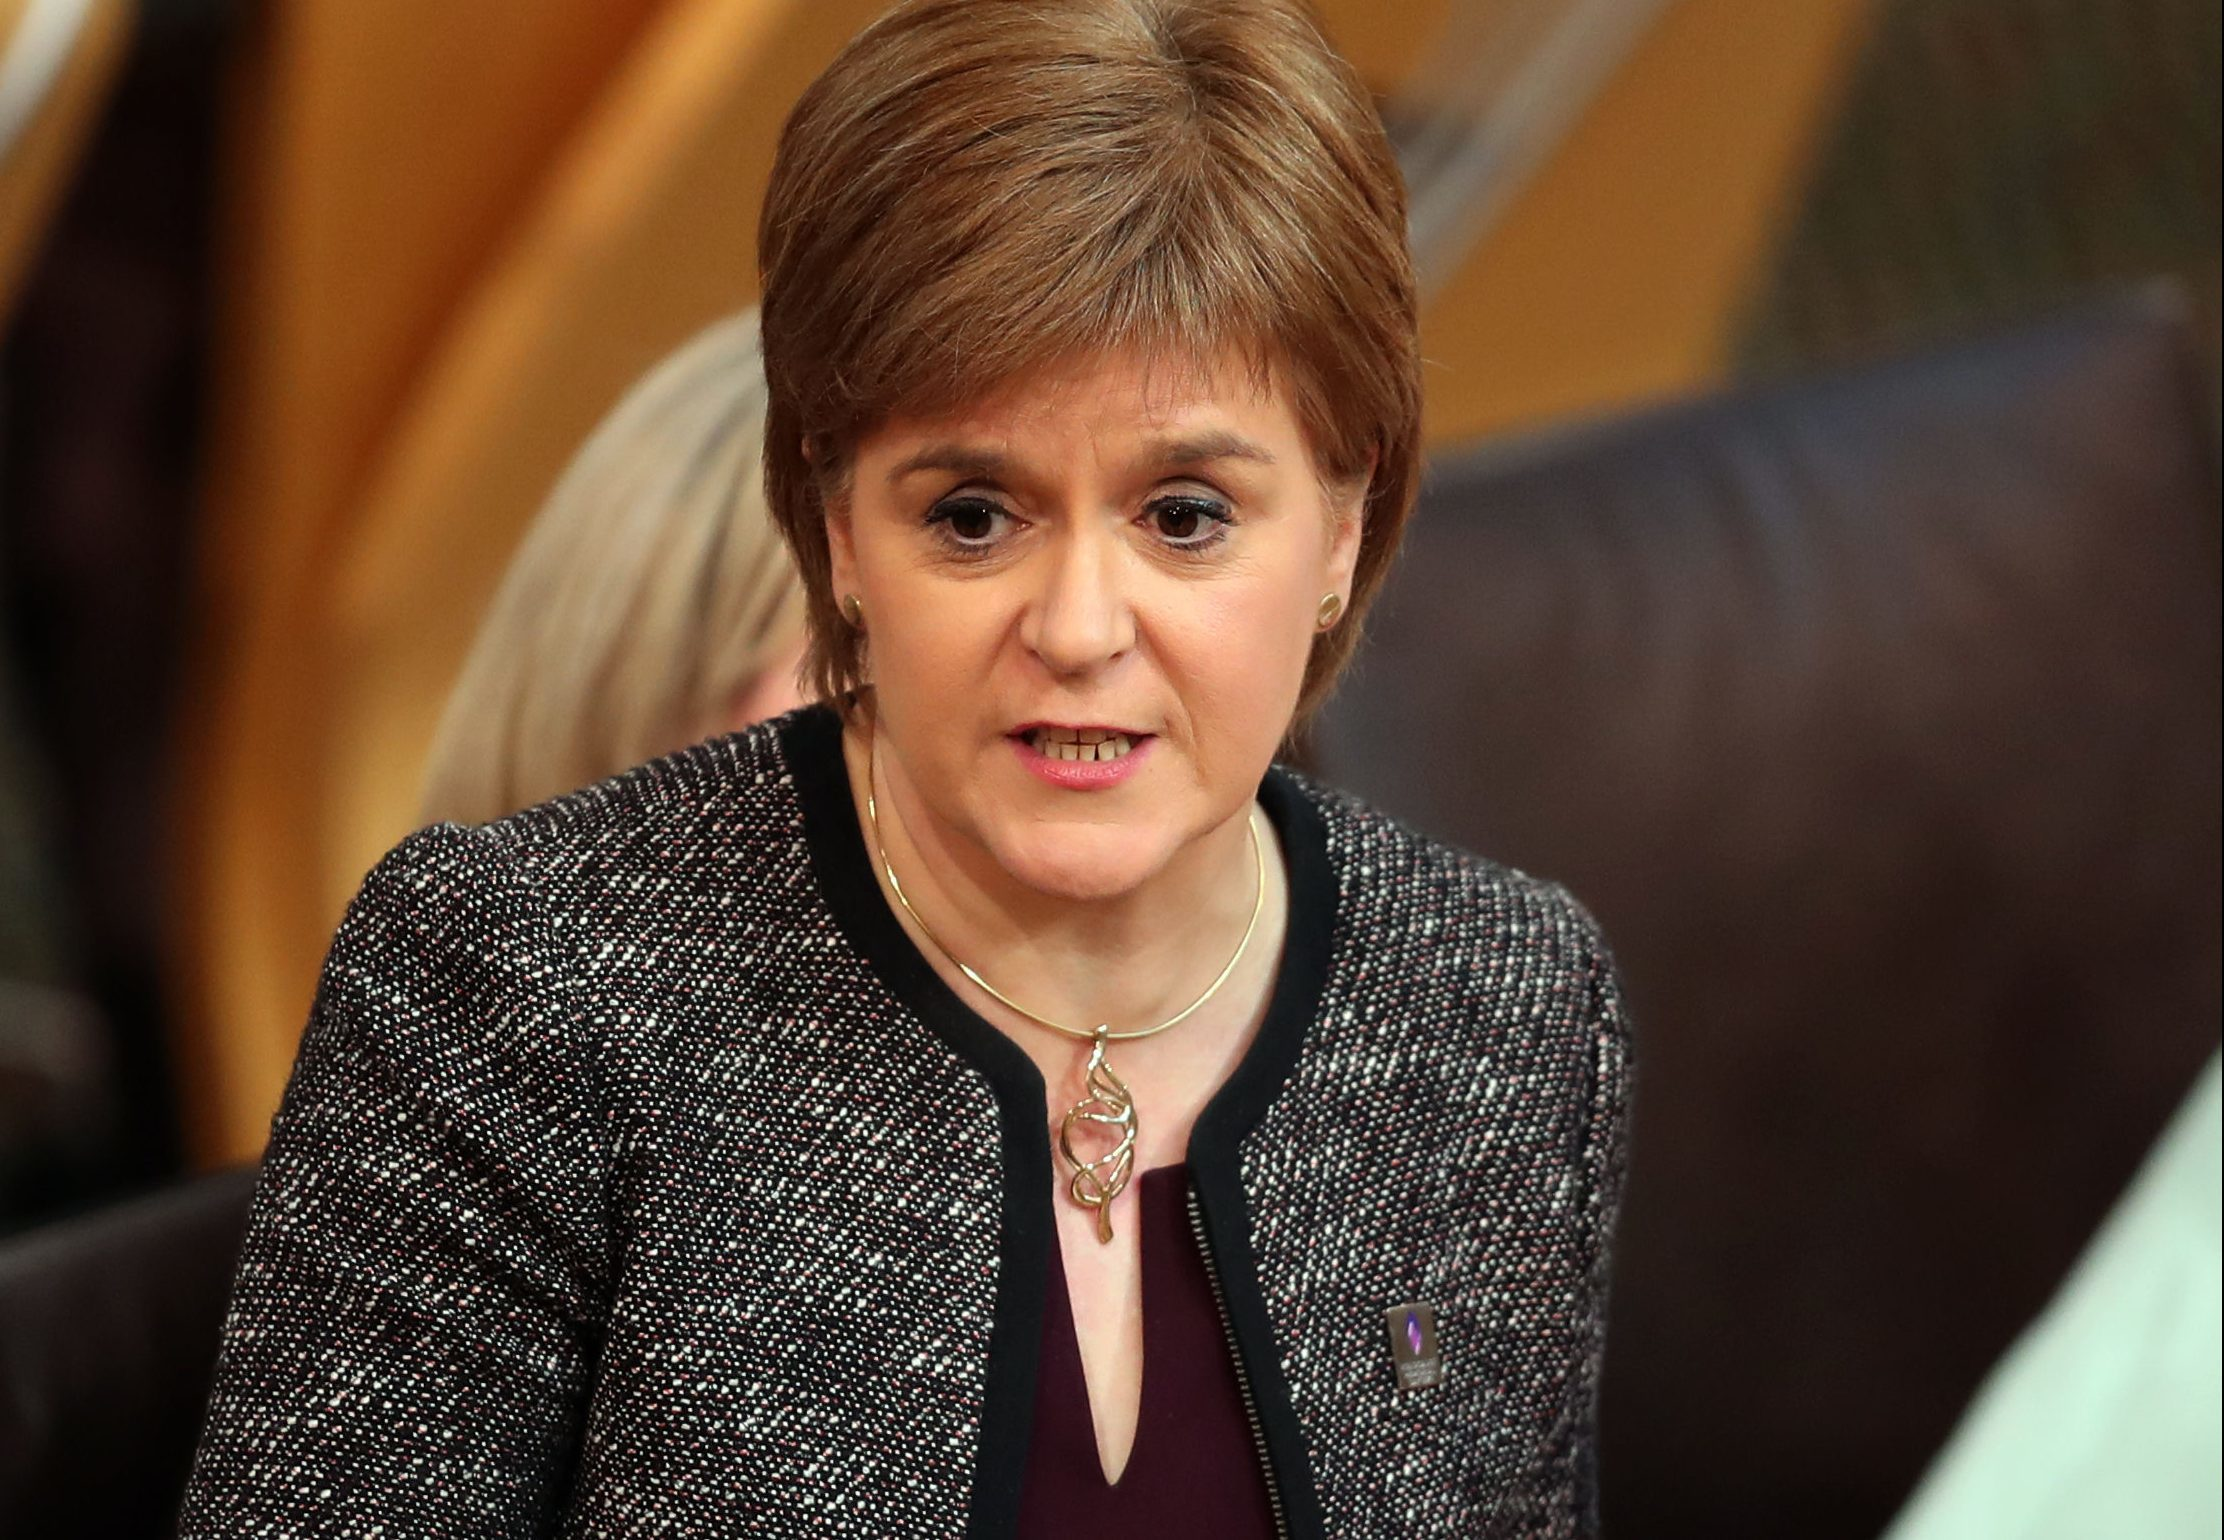 Scotland's First Minister Nicola Sturgeon during First Minister's Questions at the Scottish Parliament in Edinburgh.  (Jane Barlow/PA Wire)